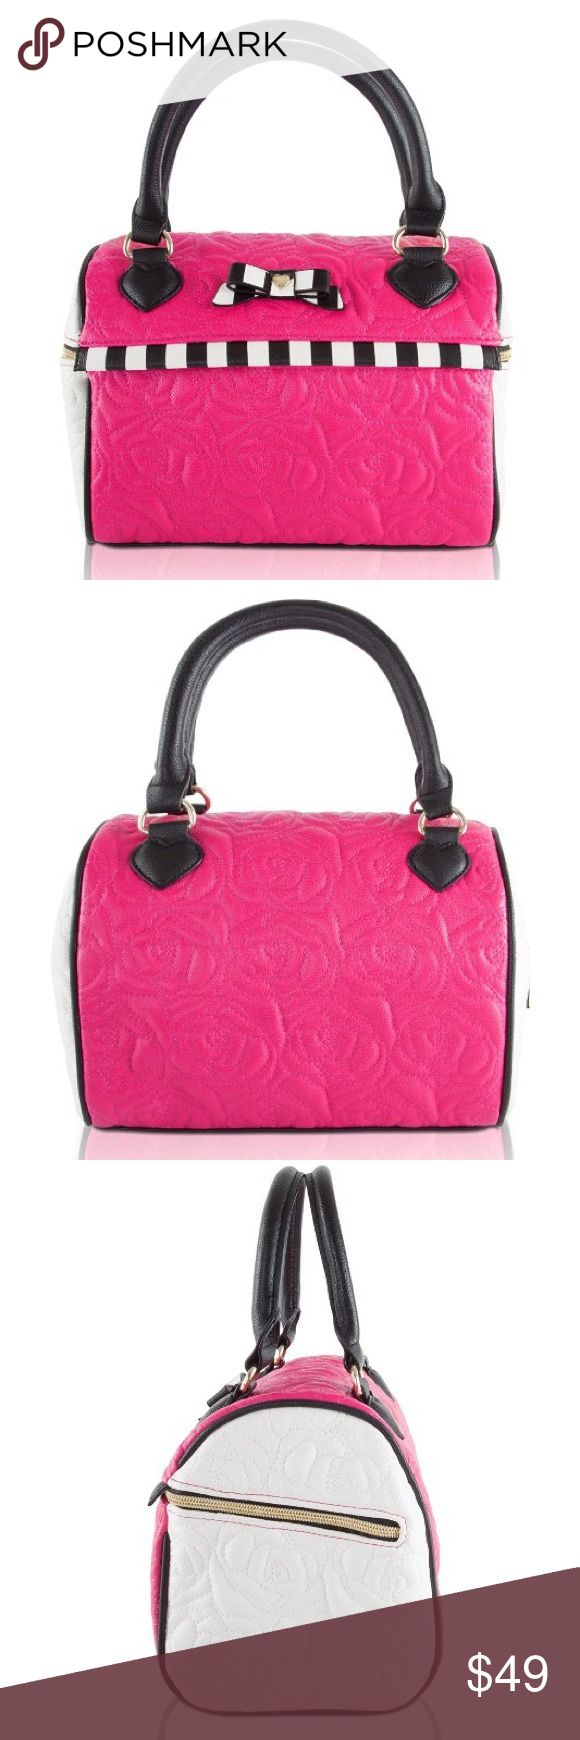 Betsey Johnson Speedy Lunch Tote Black Floral Pink Betsey Johnson Speedy Lunch Tote Black Floral Pink Betsey Johnson Bags